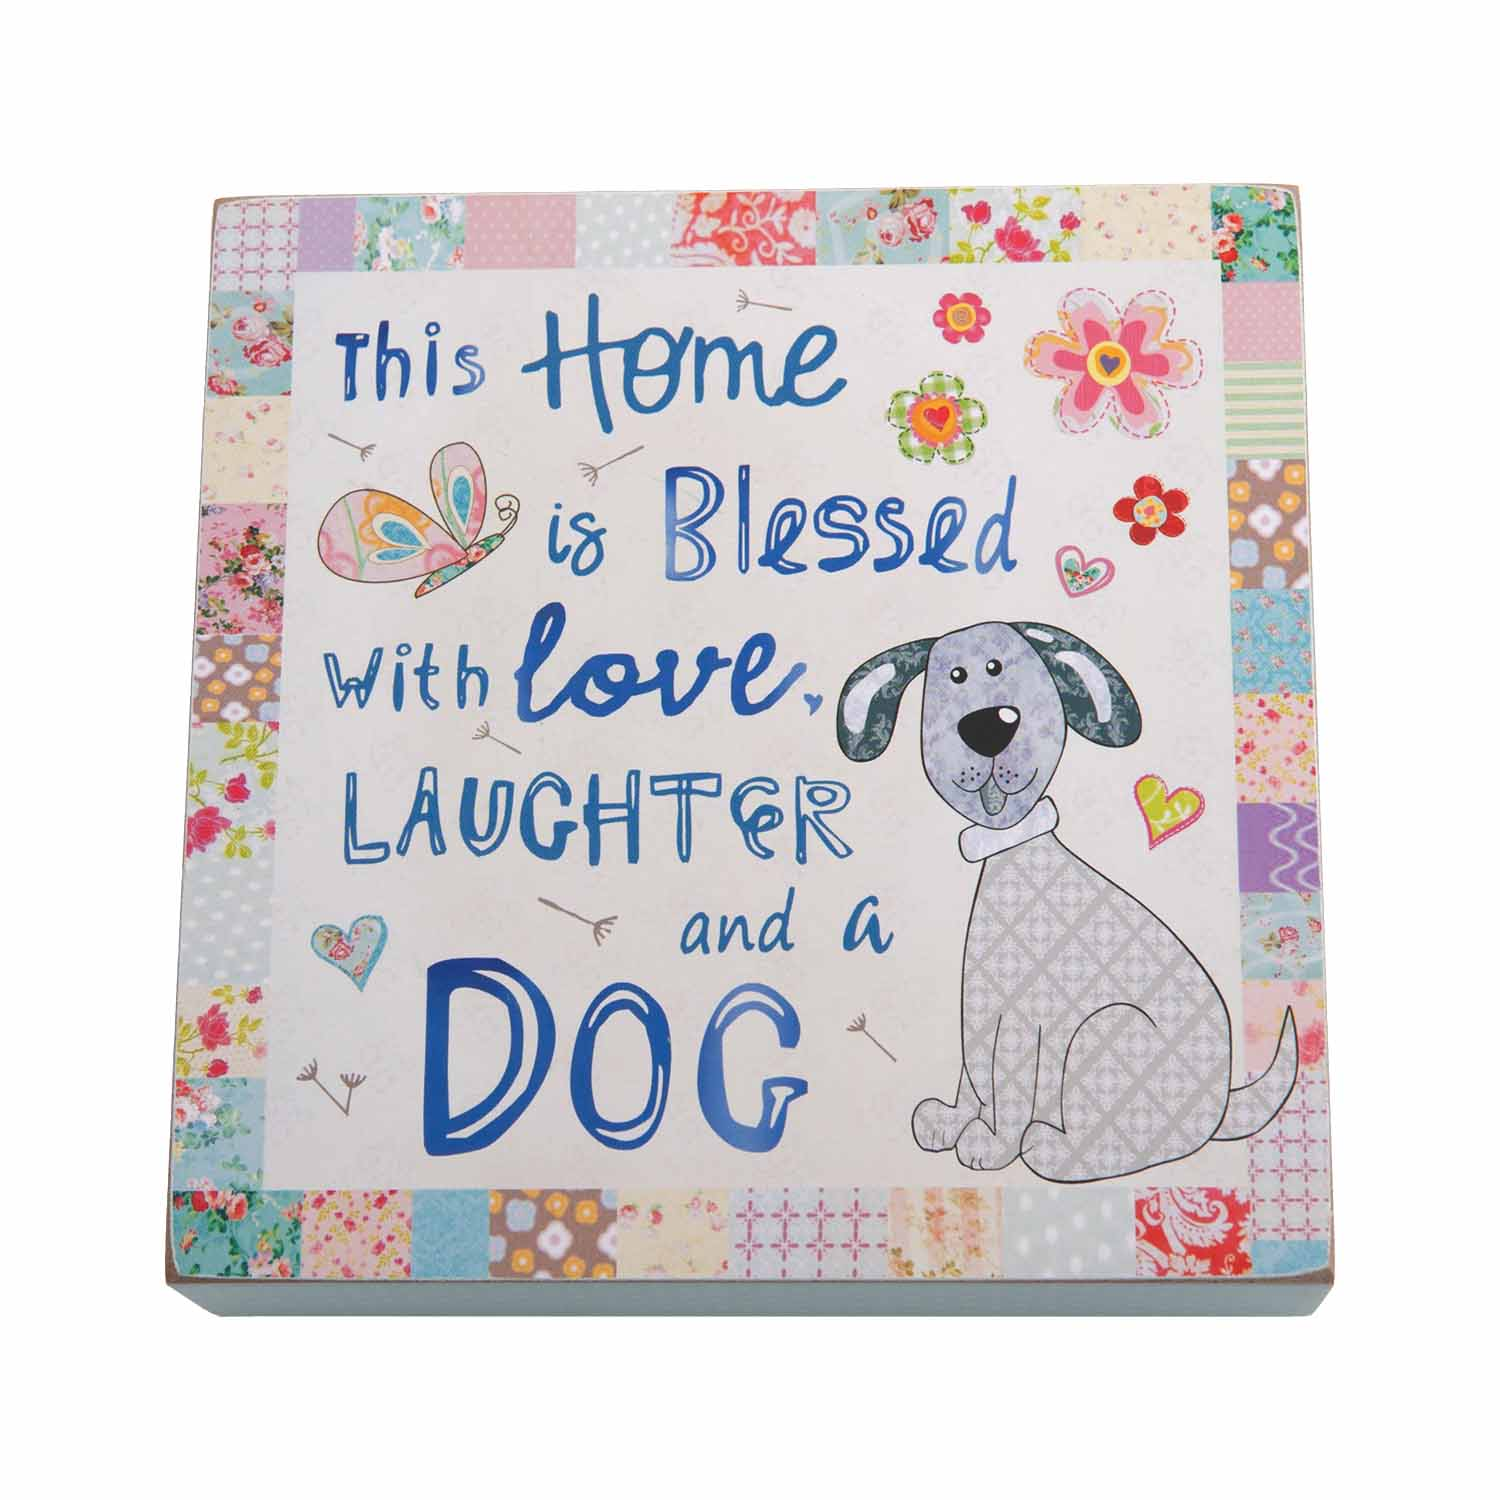 Dog Lover Gifts available at Dog Krazy Gifts – This Home Is Blessed With Love Laughtr And A Dog Art Block Sign, Just Part Of Our Collection Of Signs Available At www.dogkrazygifts.co.uk